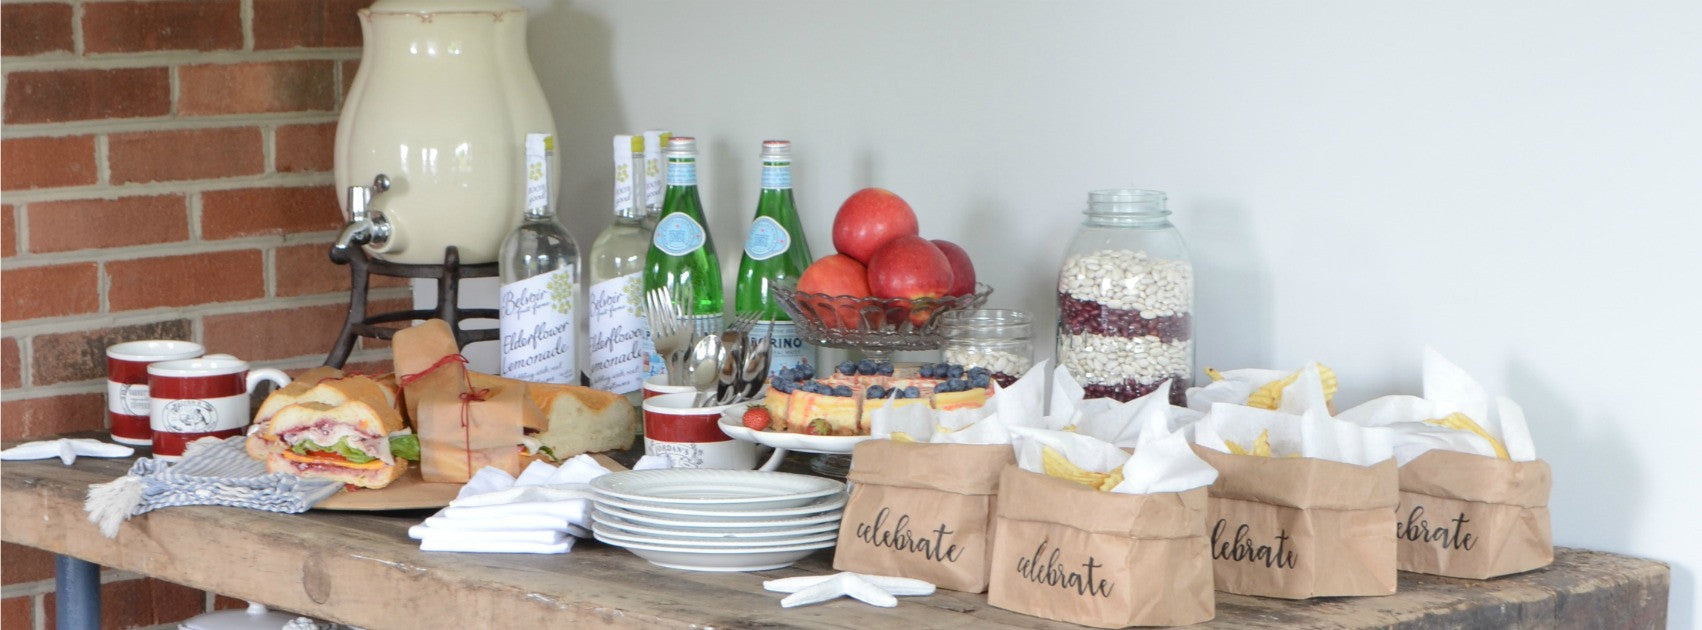 July 4 Picnic Ideas